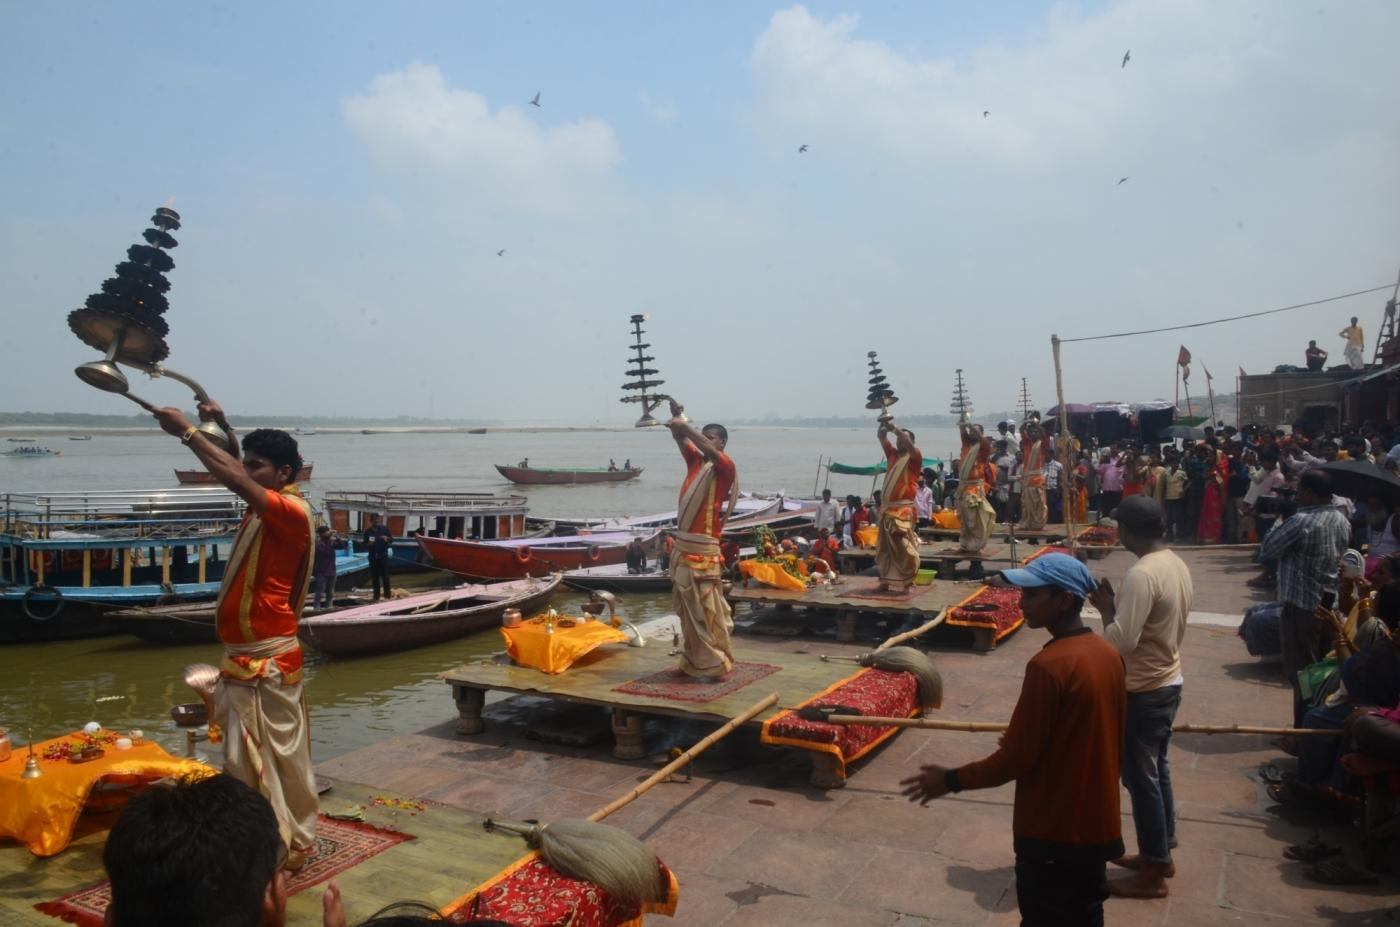 Varanasi: Priests performing daily Ganga aarti in the afternoon at Dashashwamedh Ghat in view of the lunar eclipse in Varanasi, on July 27, 2018. The Century's longest lunar eclipse or Chandra Grahan will be visible tonight form 10:44 pm tonight and it will end at 4:58 am on July 28. The total lunar eclipse duration will be 103 minutes or 1 hour 43 minutes long. (Photo: IANS) by .